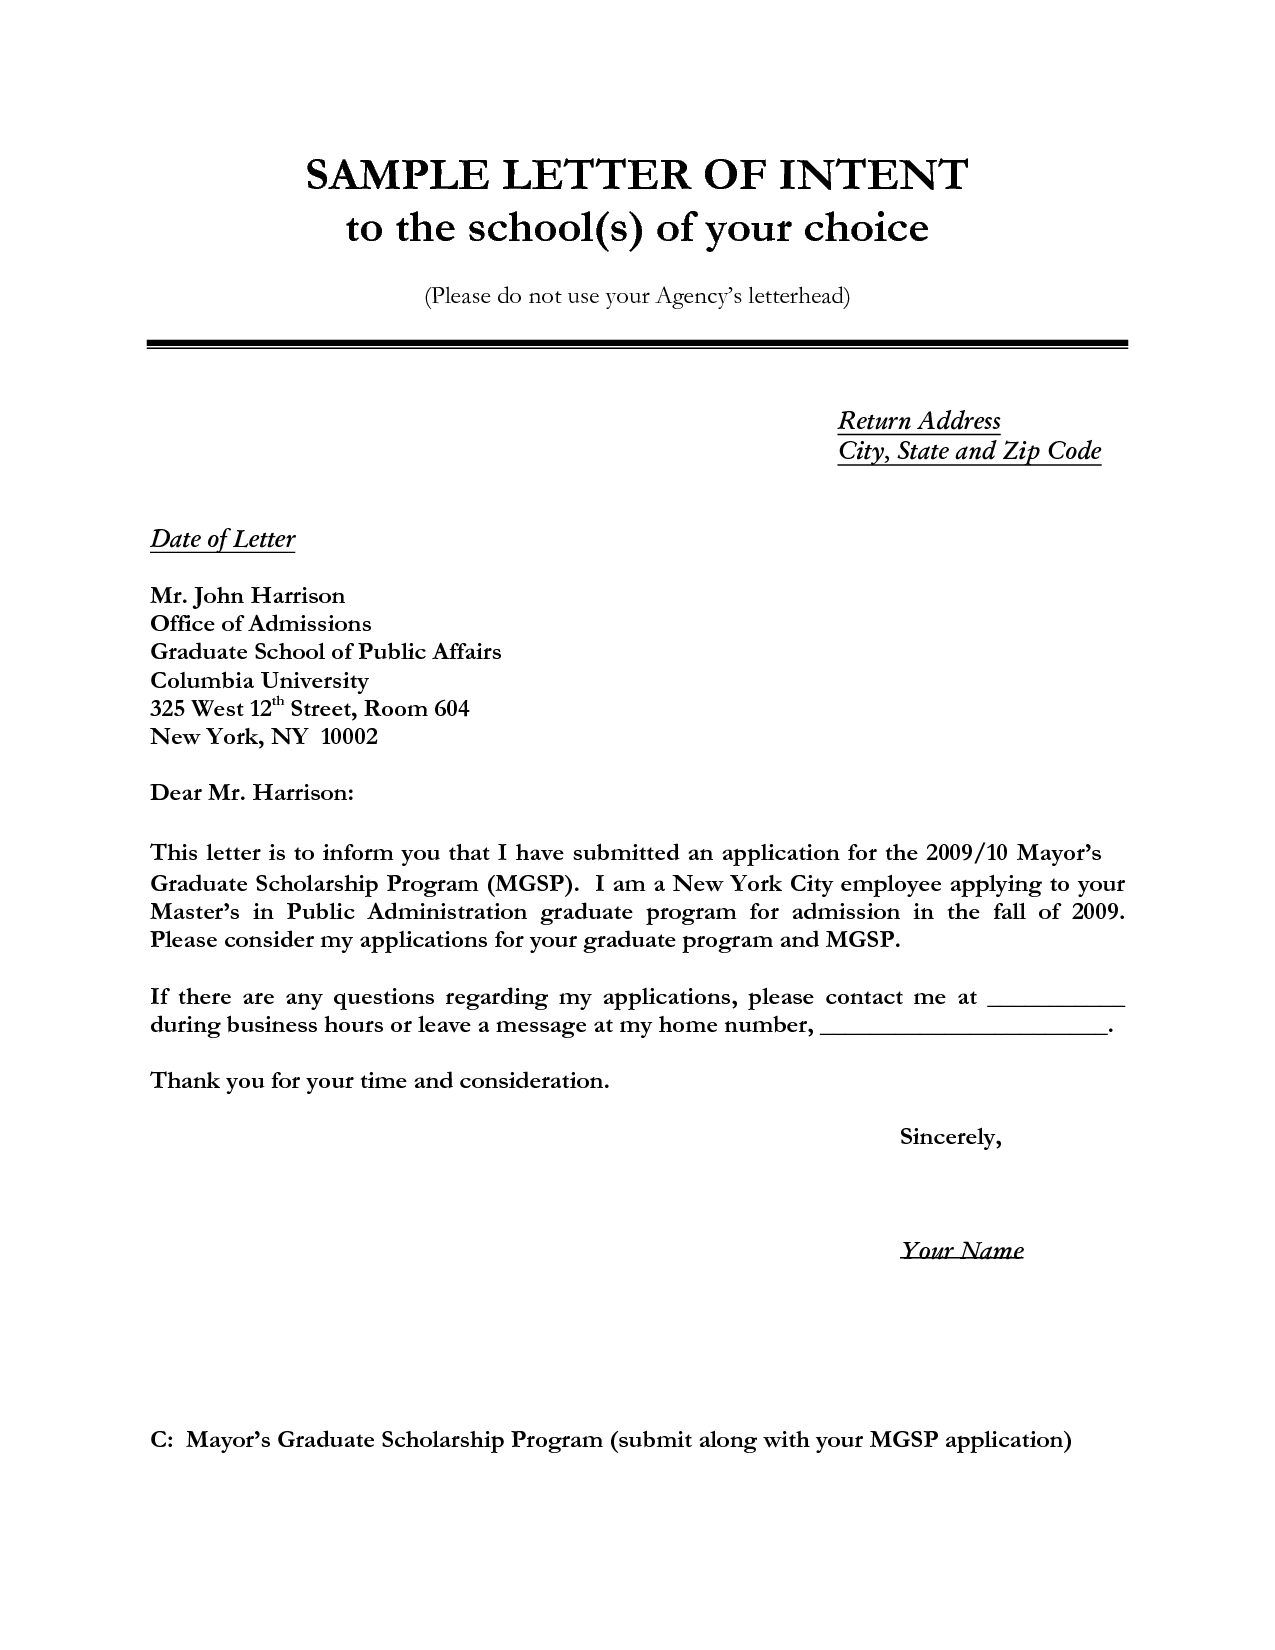 free real estate letter of intent template Collection-Letter of intent sample 12-n